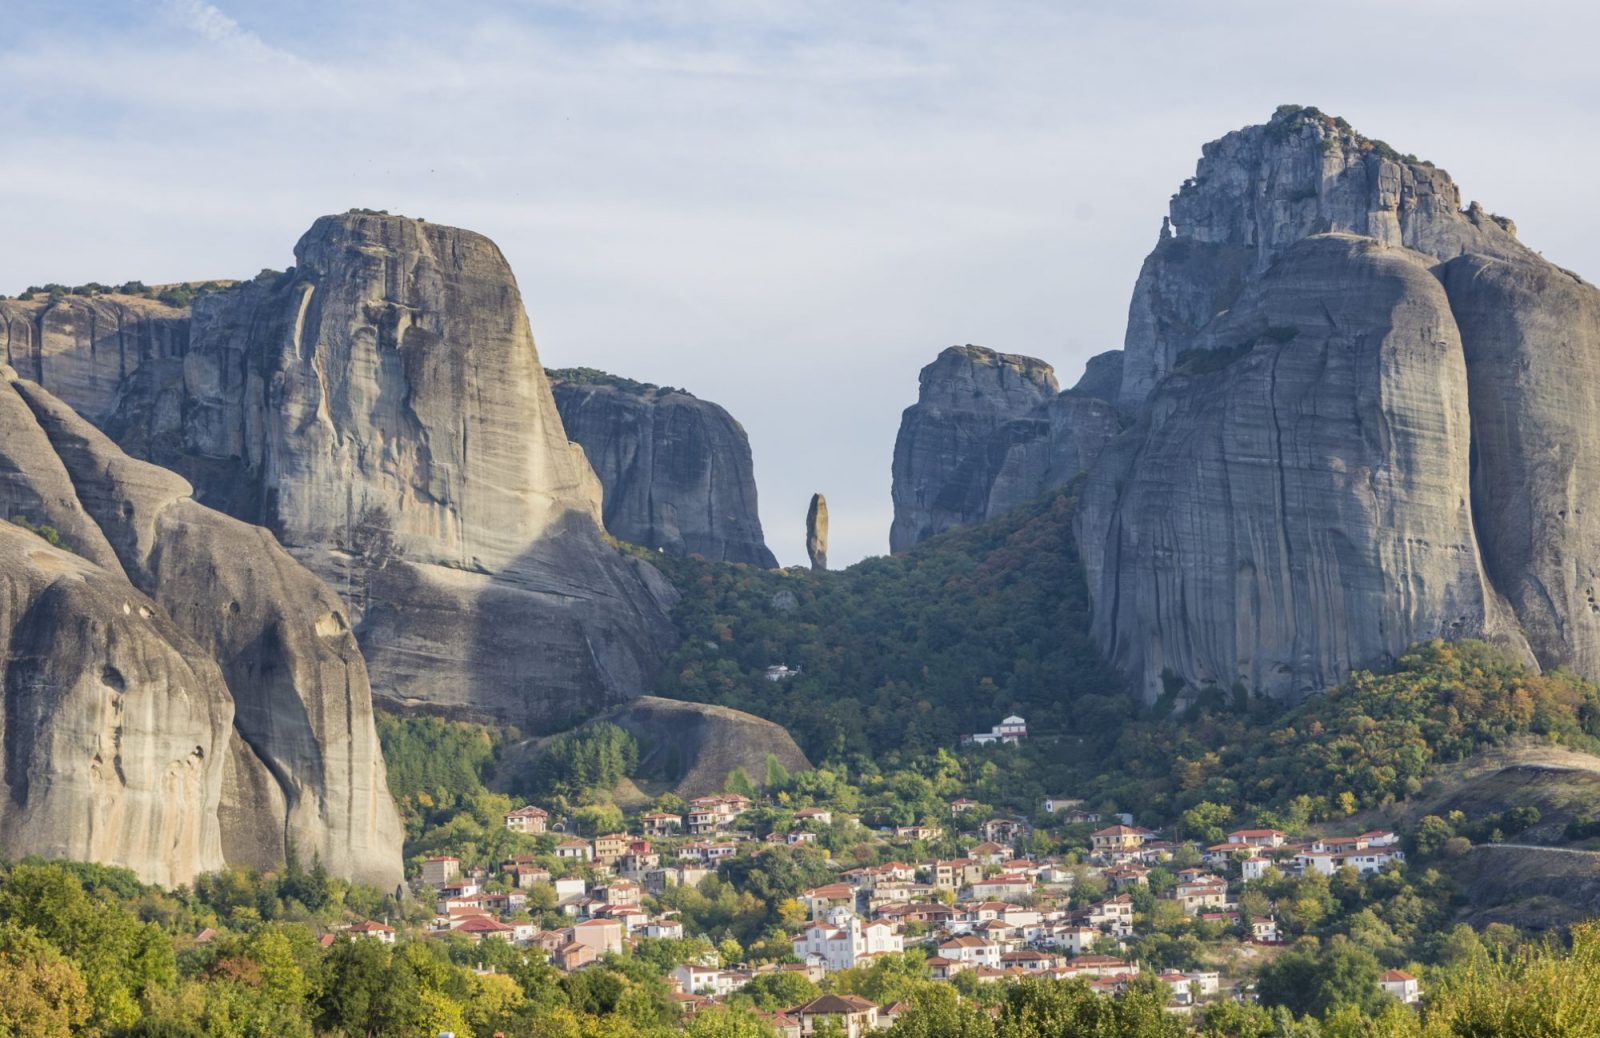 meteora rises up above the village of kastraki